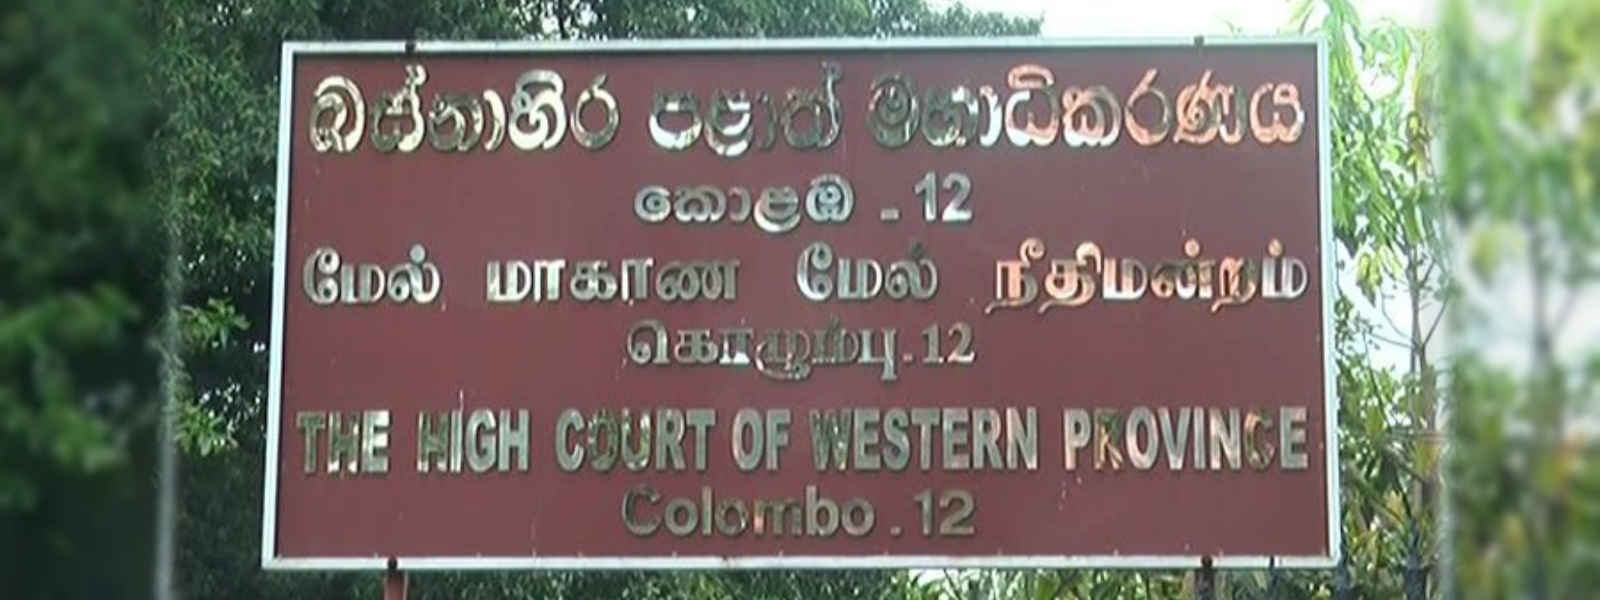 Incarcerated & remanded drug offenders file for bail; applications rejected